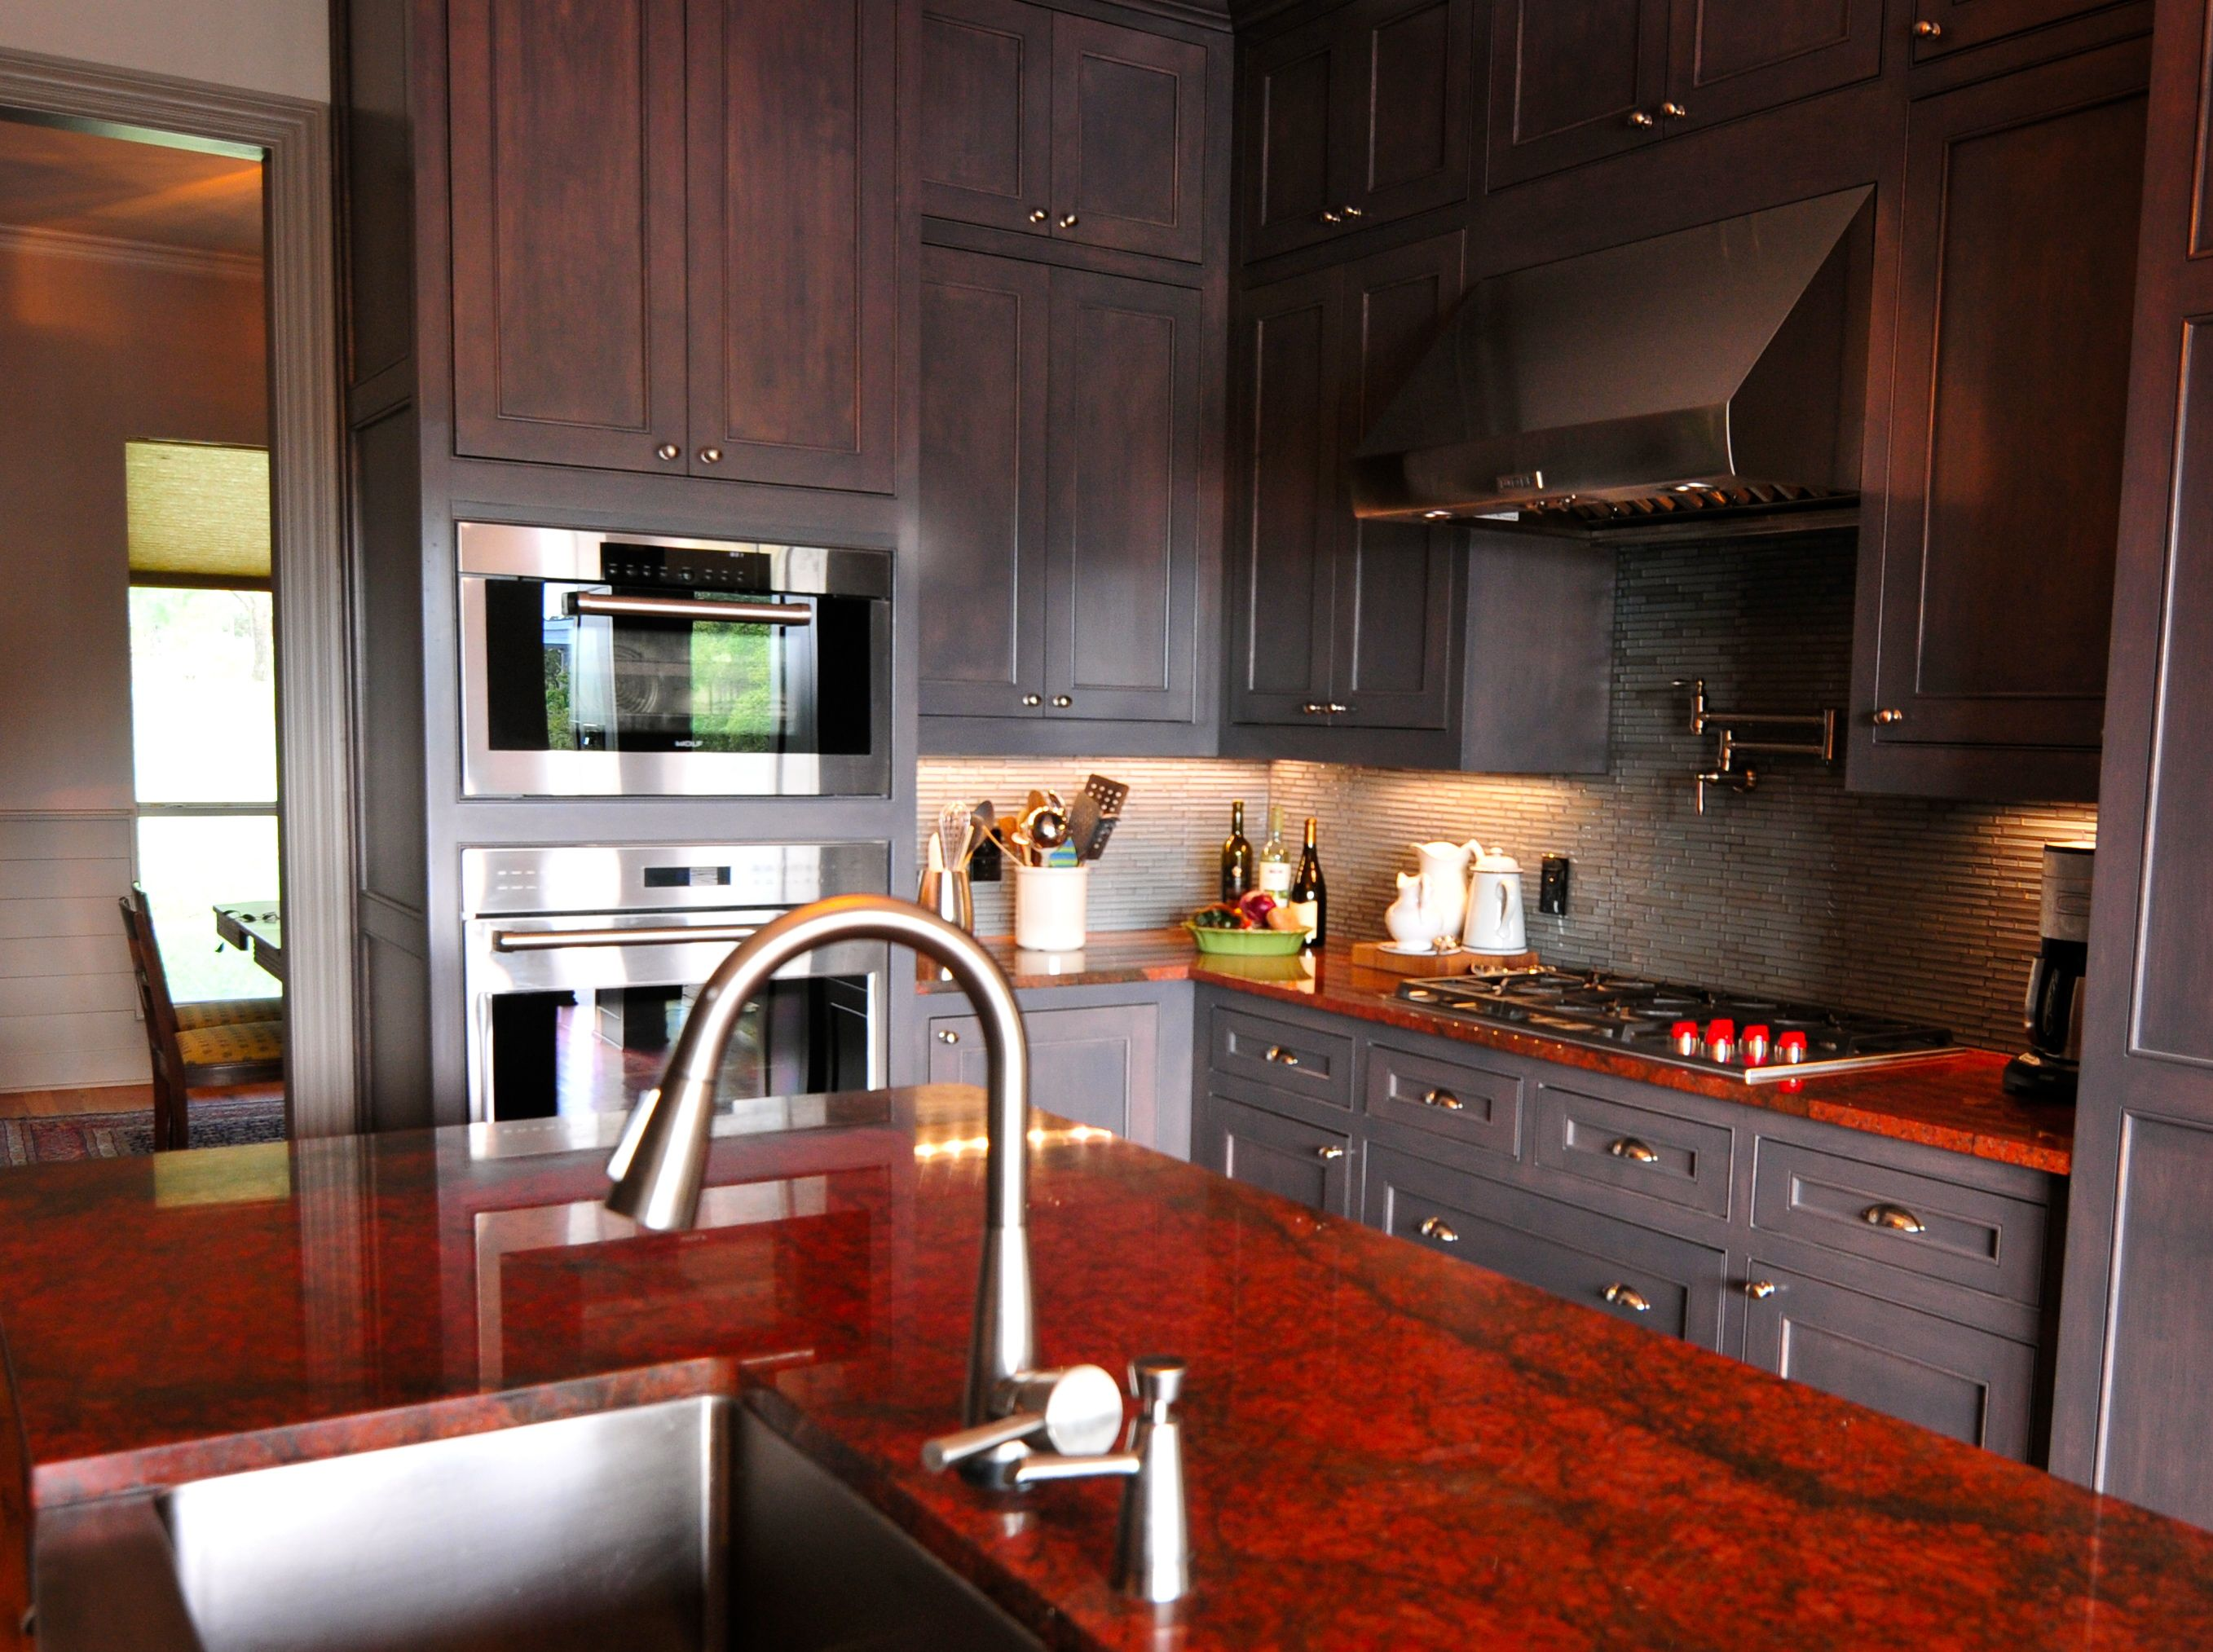 Red Dragon Granite And Grey Cabinets With Images Red Granite Countertops Quartz Kitchen Countertops Kitchen